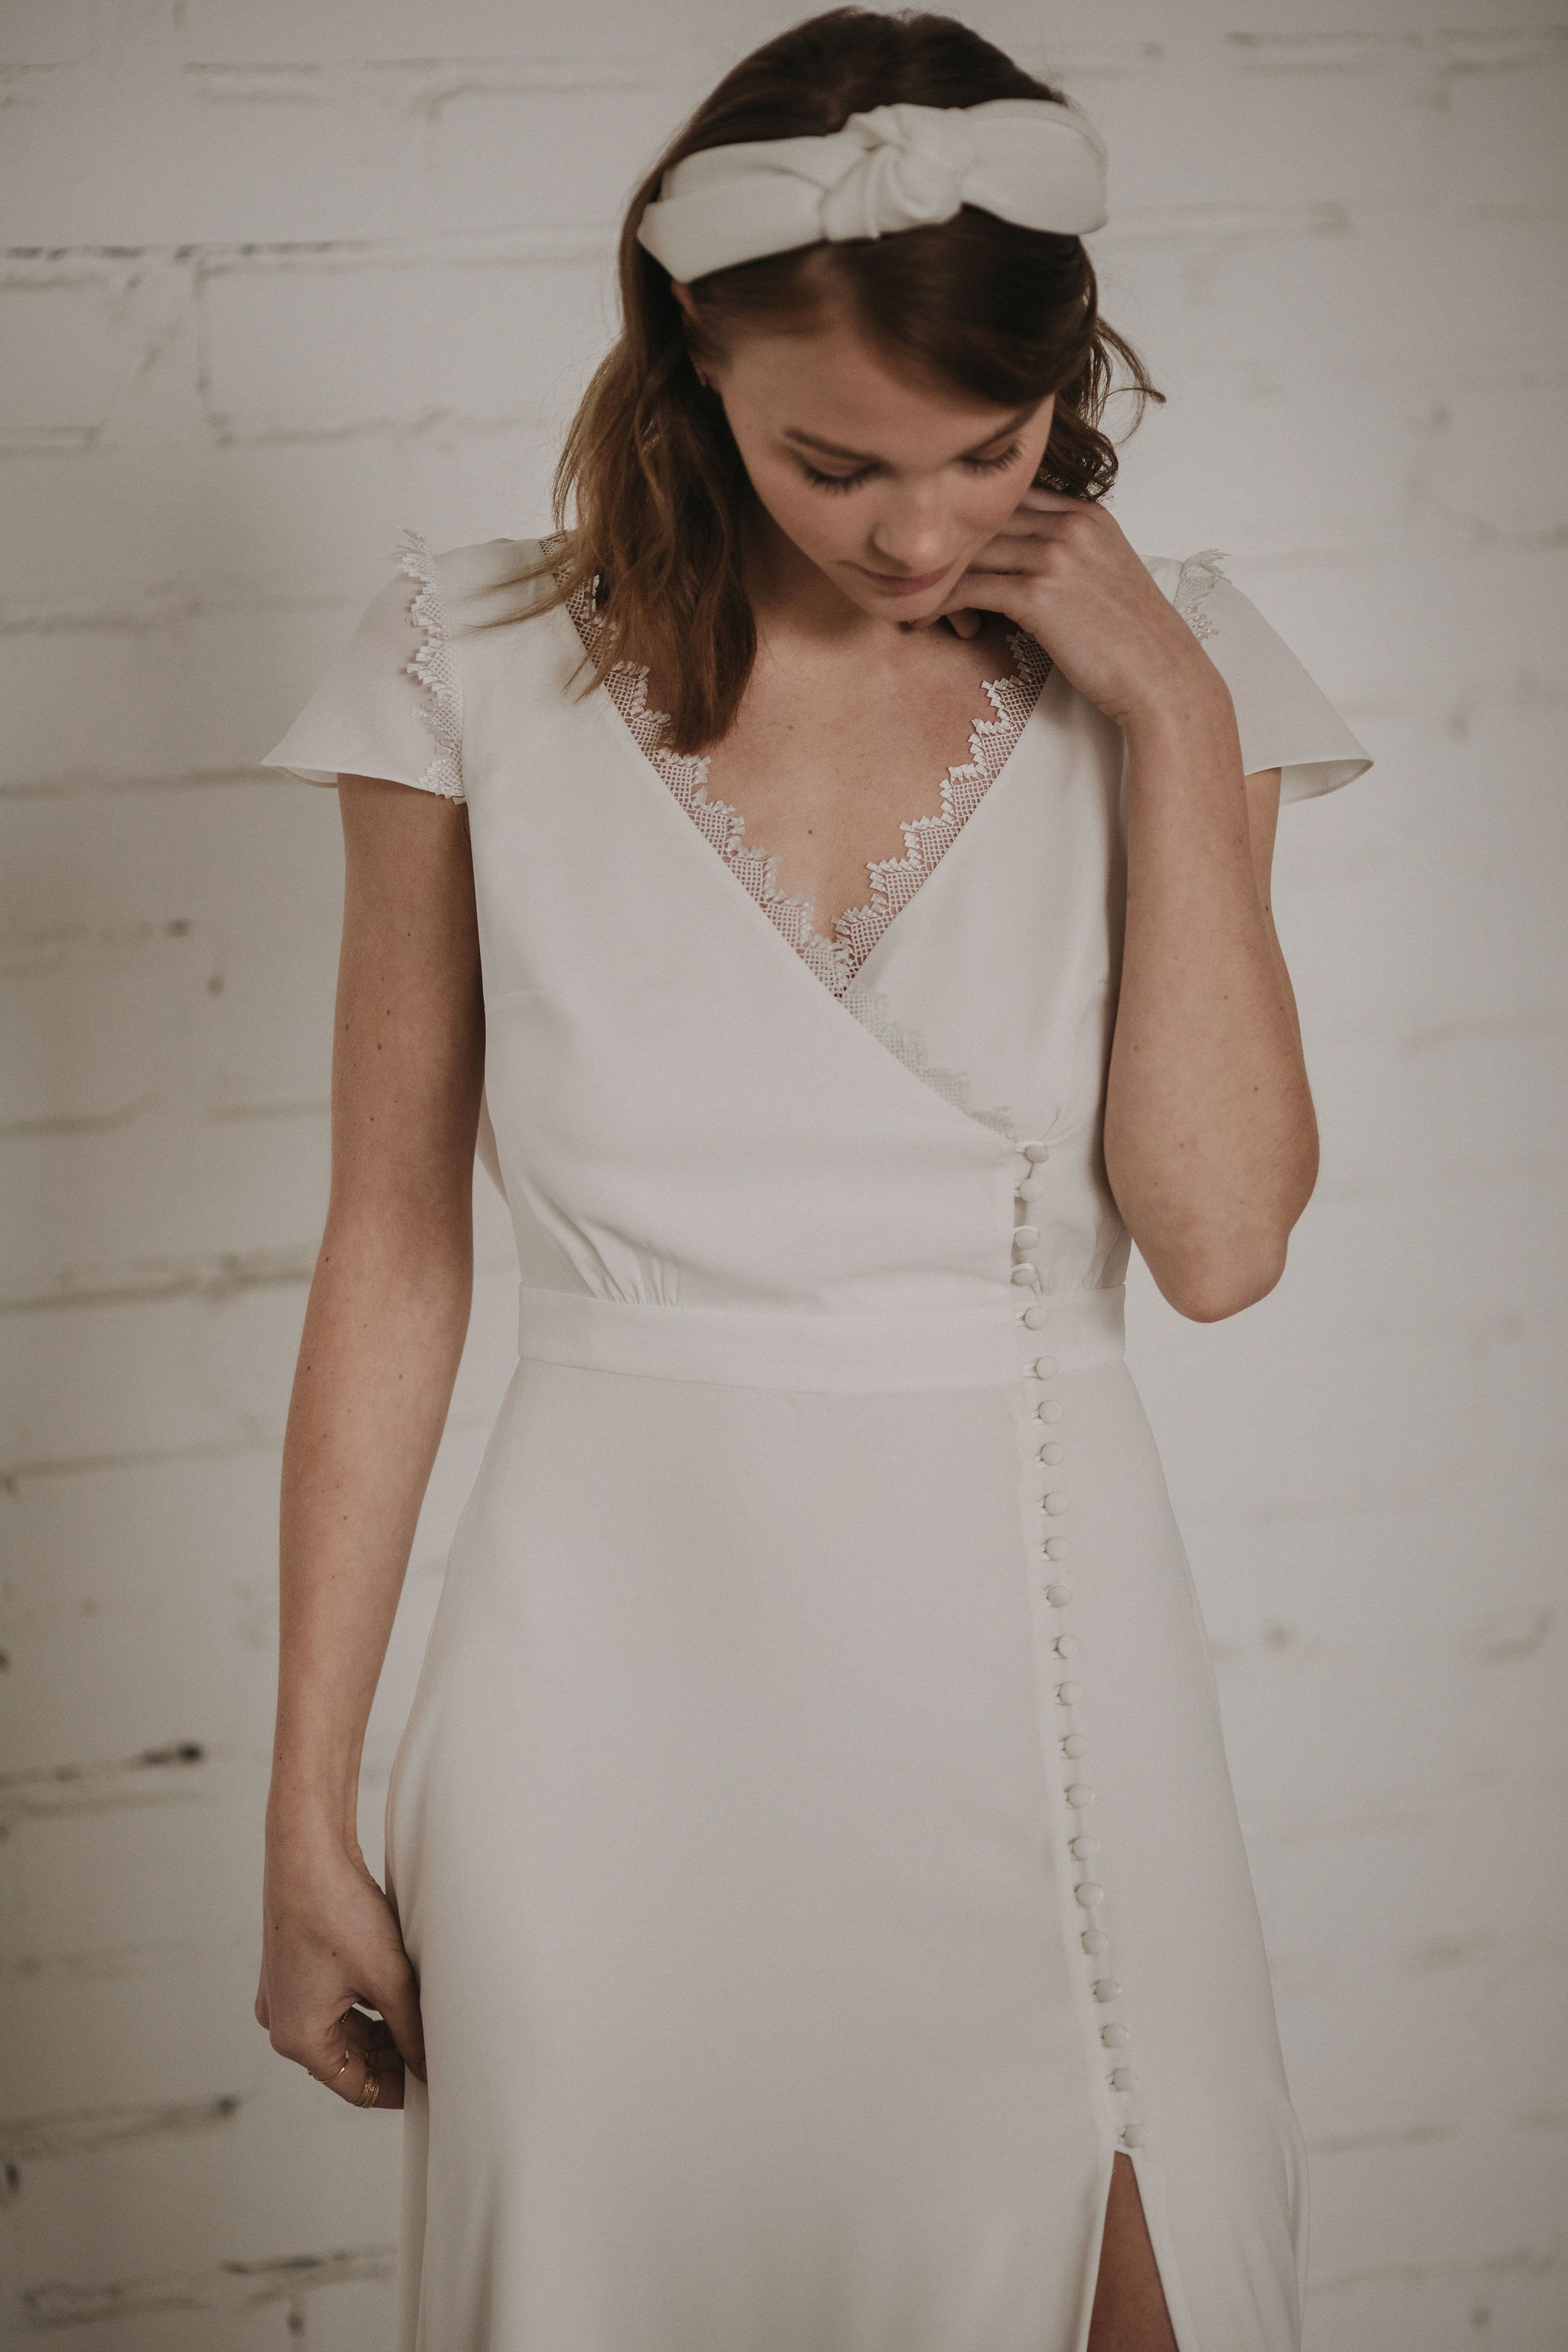 cool boho wedding dresses for the modern bride at Archive 12 Ireland